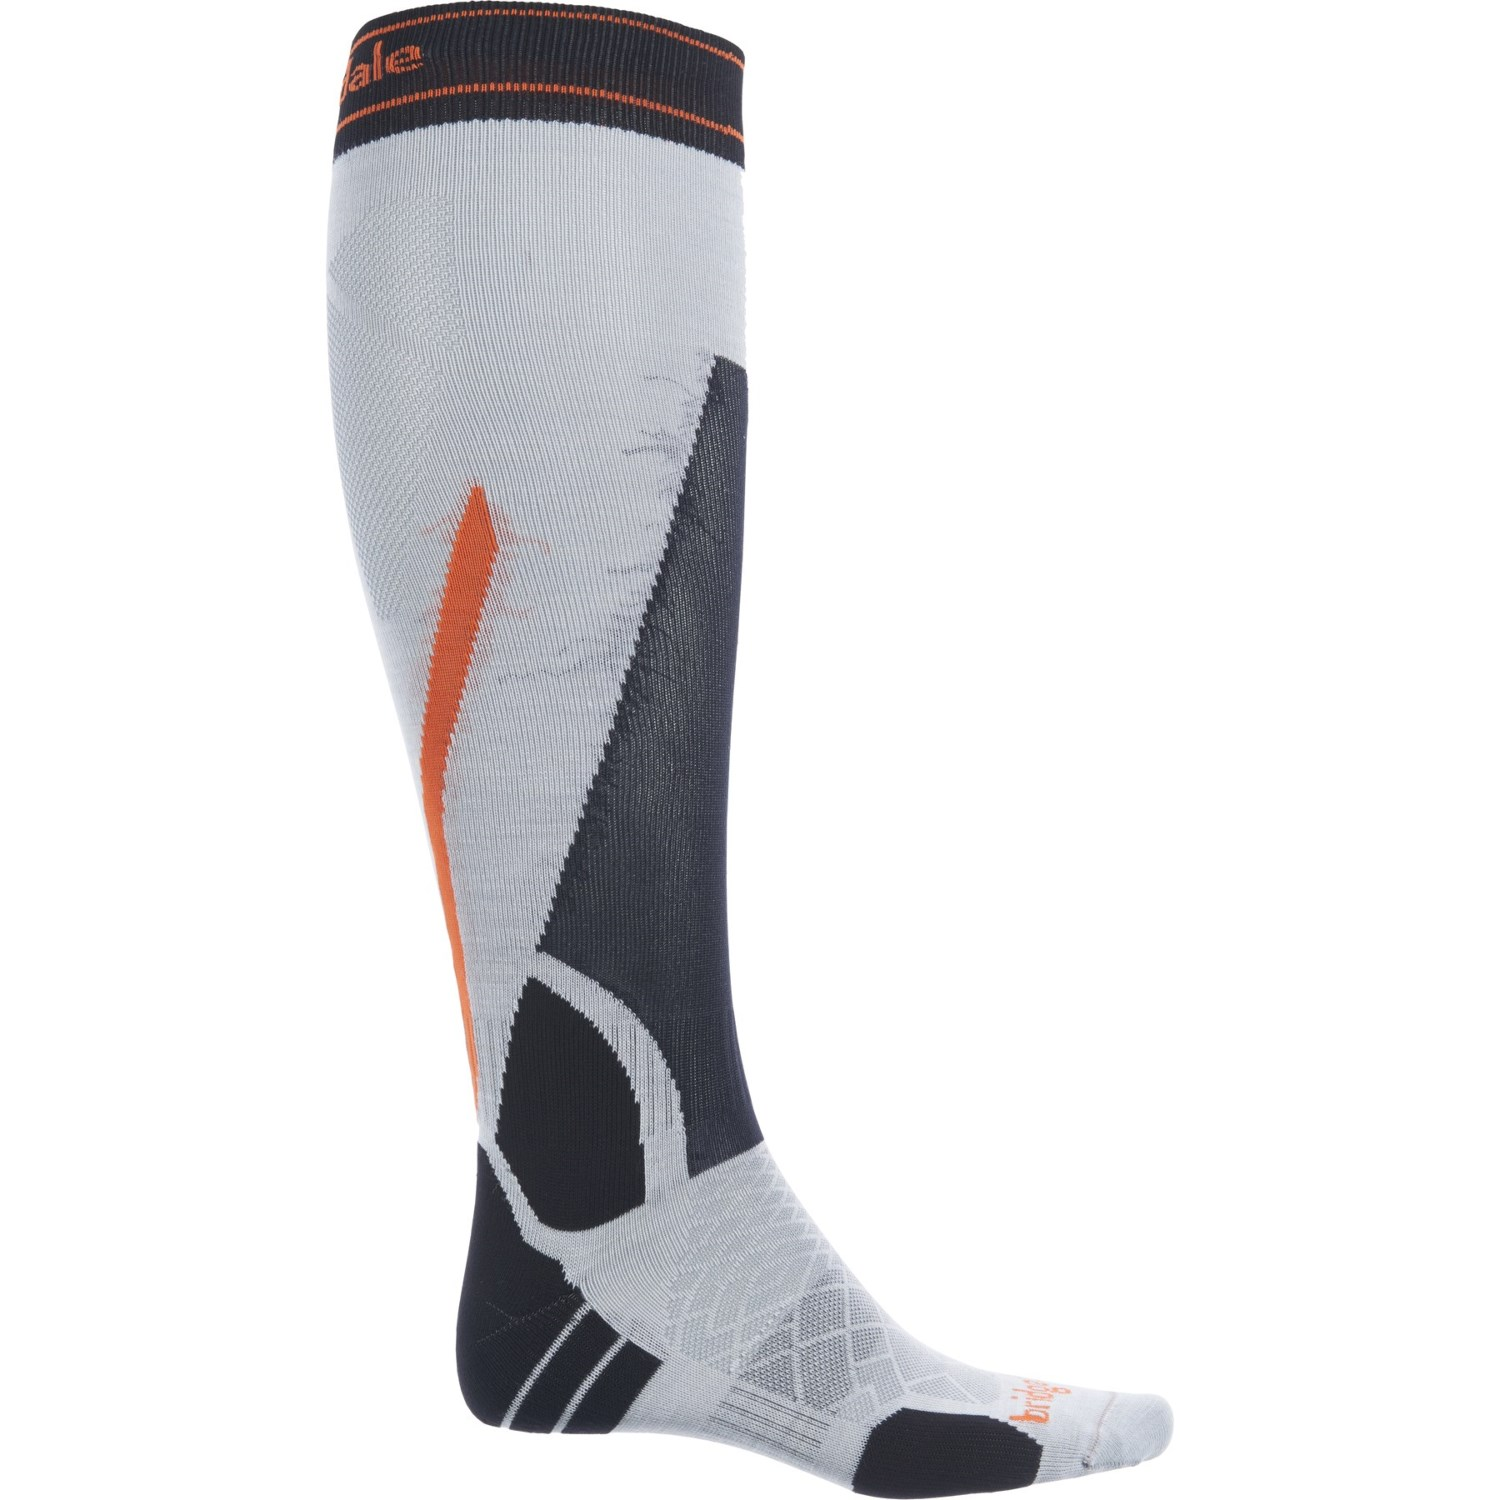 Bridgedale Mens Lightweight Heel Fit Merino Fusion Winter Sport Socks